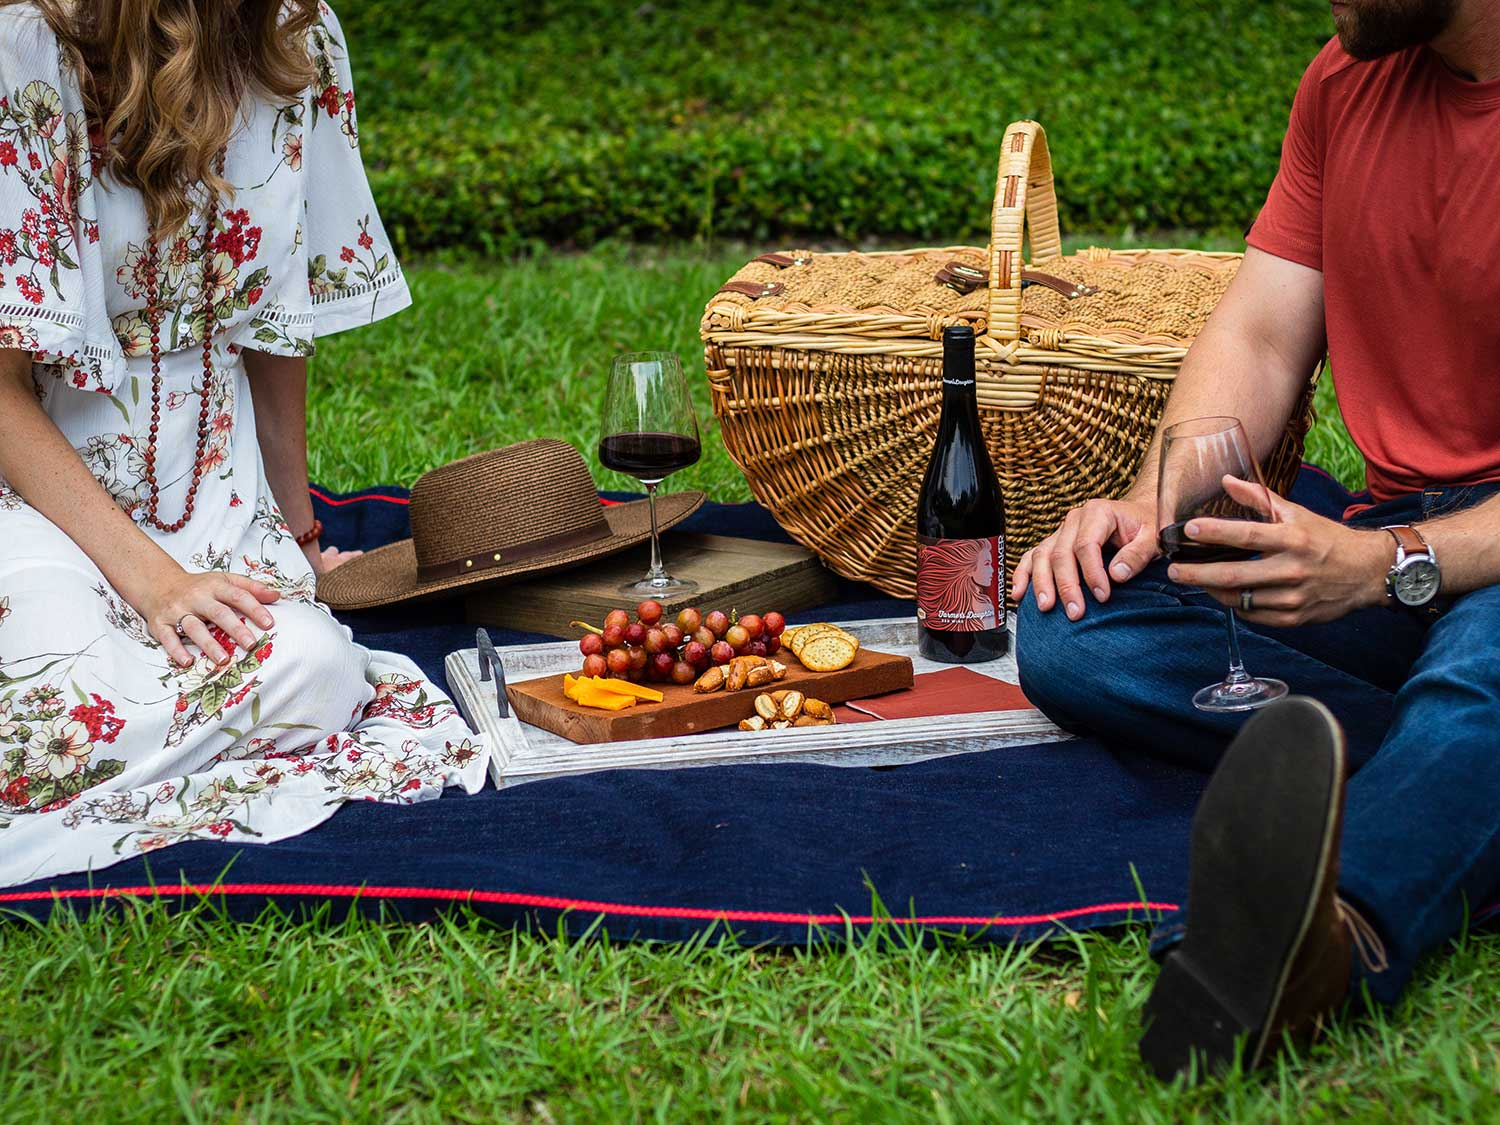 Man and woman having picnic in grass.